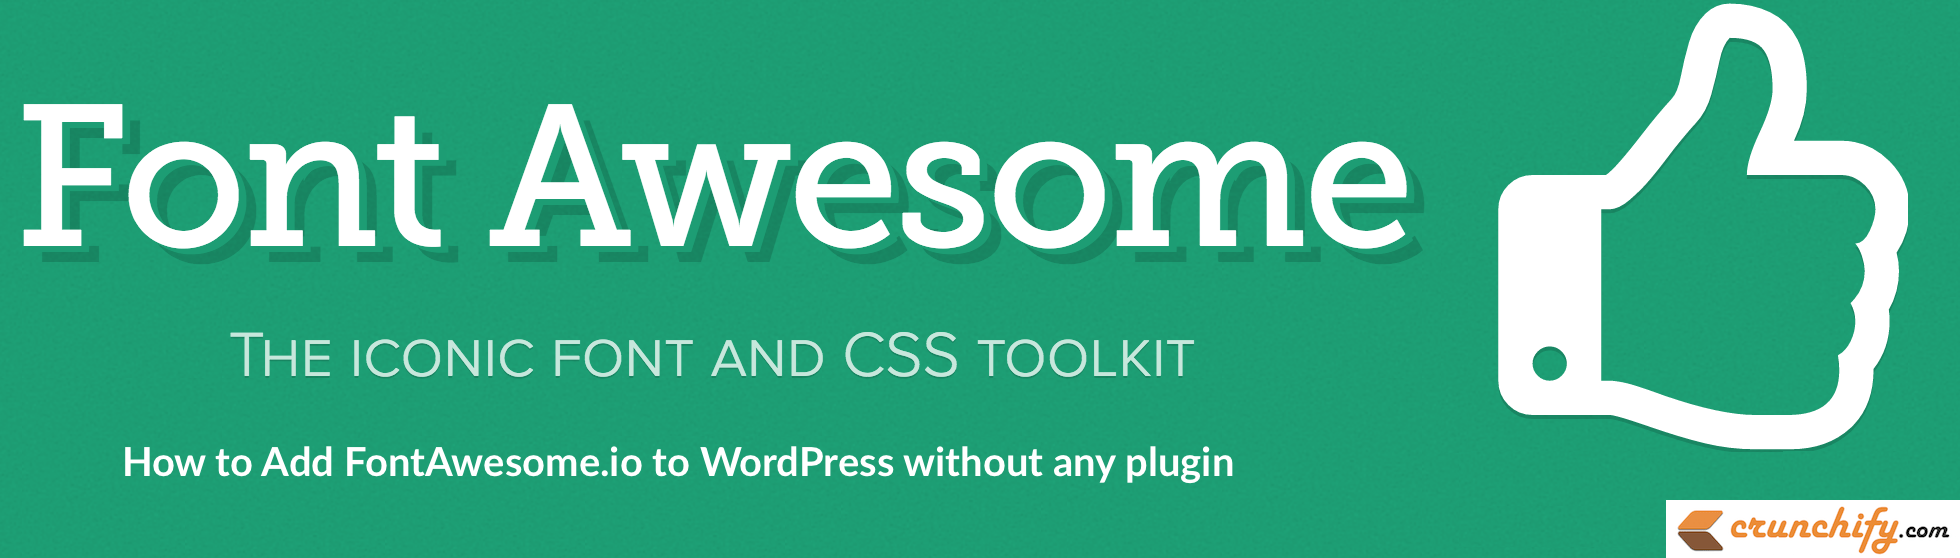 How to add FontAwesome.io Fonts to WordPress without any